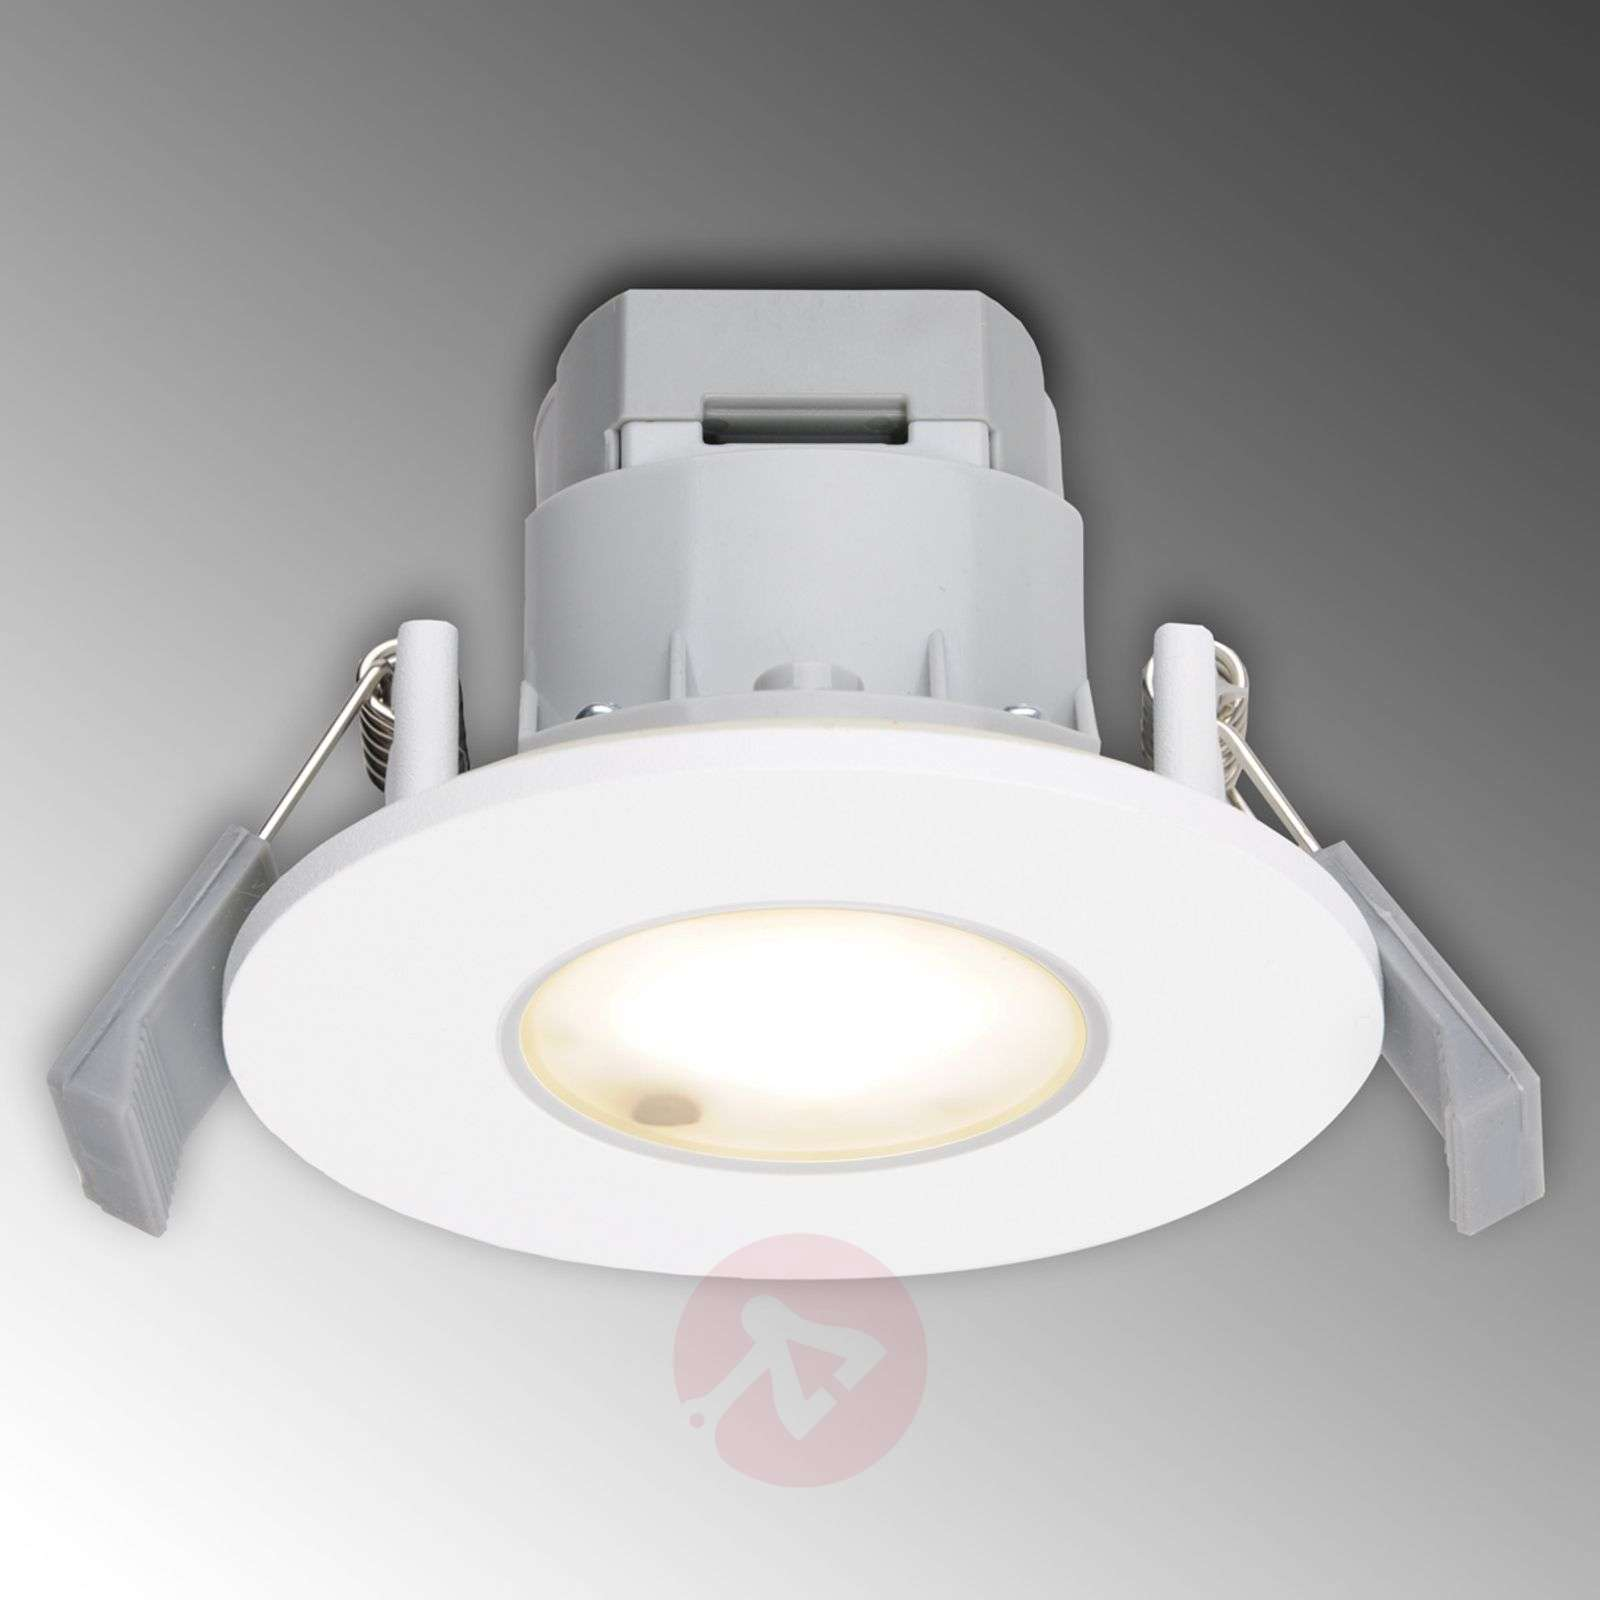 Kimra LED recessed light IP65-9005001-01